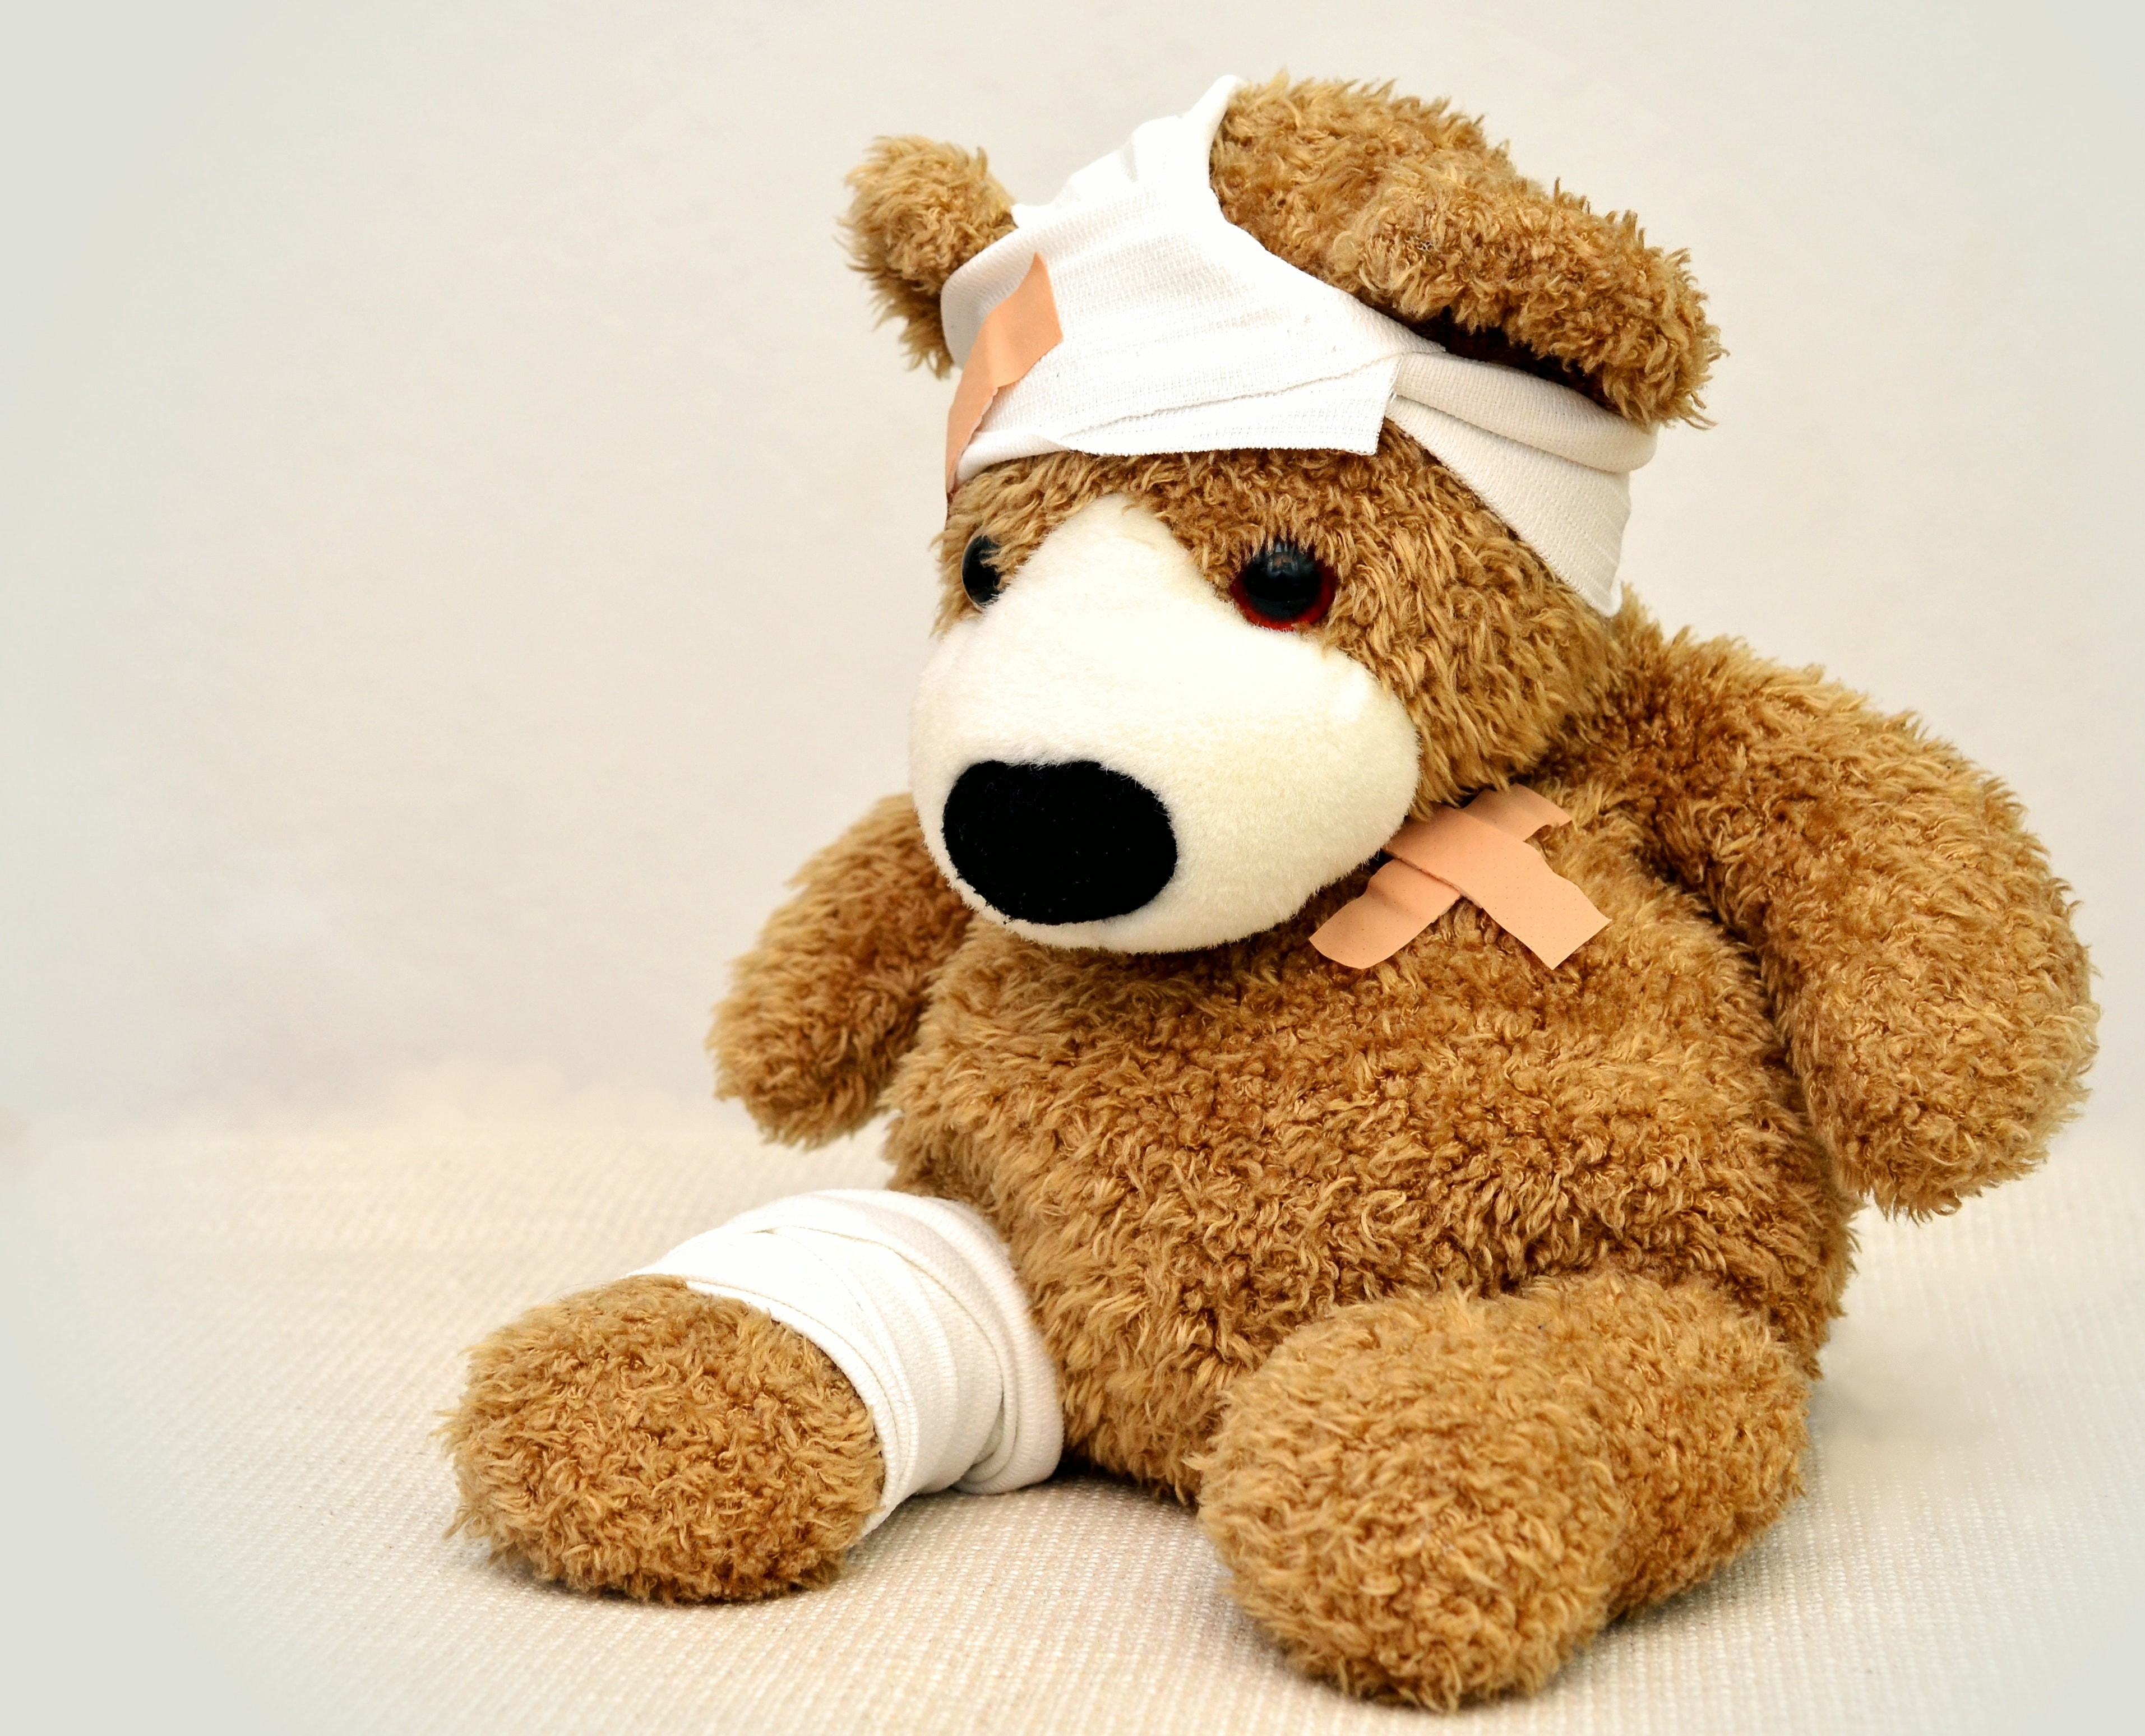 Photograph of a light brown teddy bear with bandaids on its heart, bandages and bandaids on its head, and a bandage on its right leg.